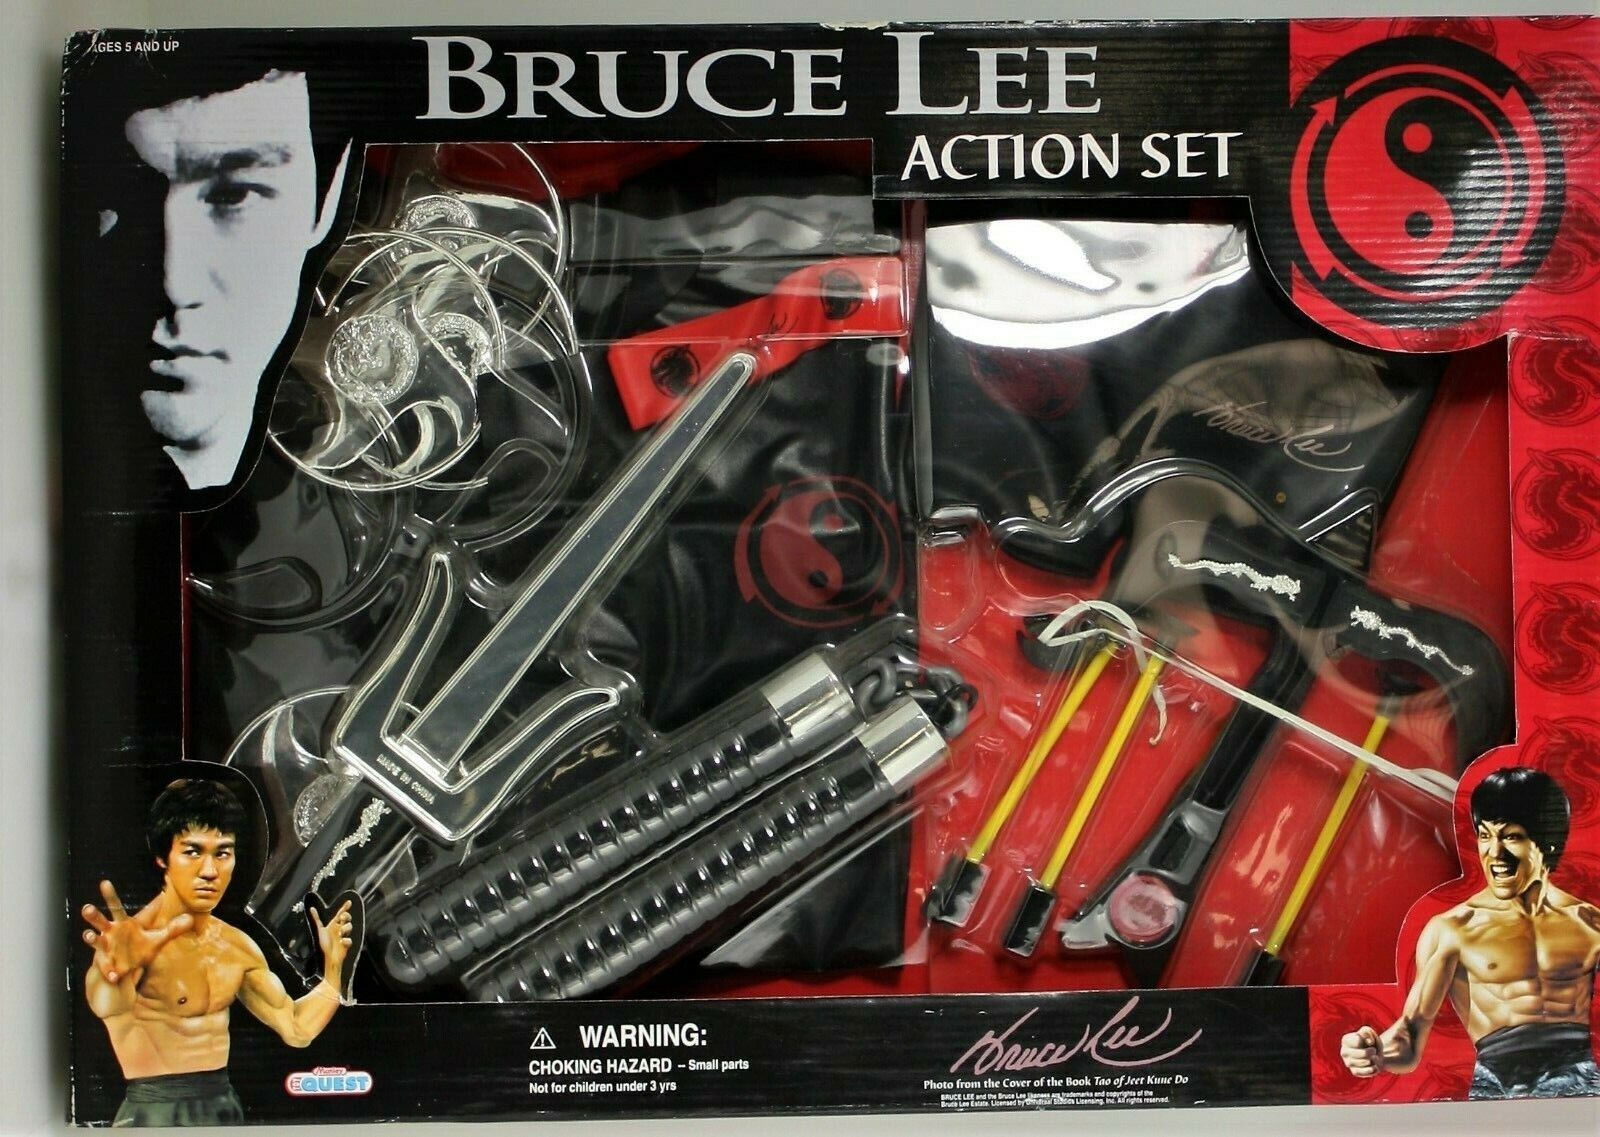 Bruce Lee Deluxe Weapon Set Martial Arts Toy Set Manley Toy Quest